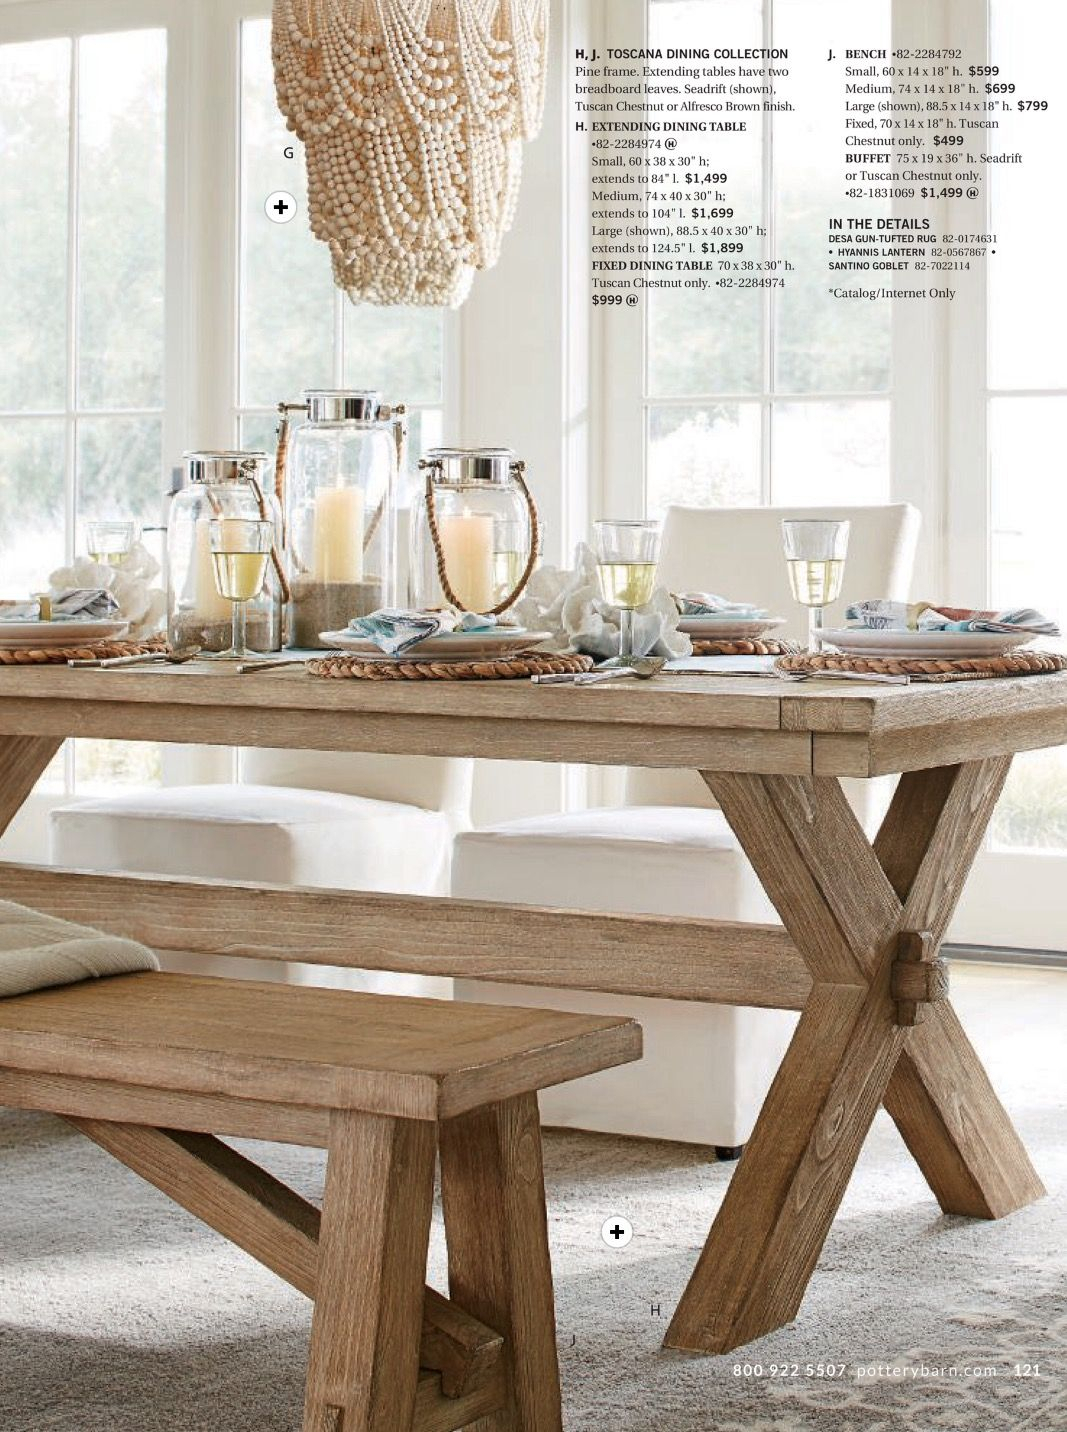 Toscano Dining Table And Bench In Seadrift, Amelia Wood Bead Regarding Newest Seadrift Toscana Extending Dining Tables (View 4 of 25)